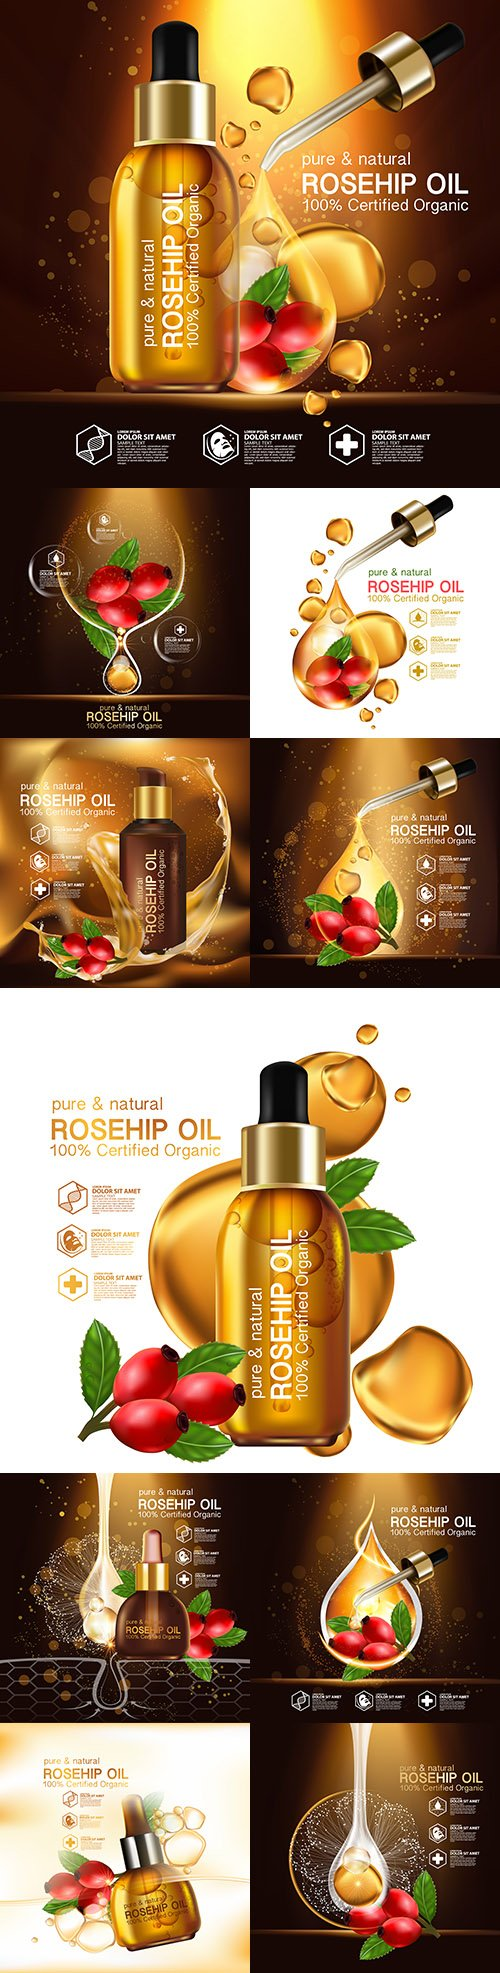 Rosehip Oil cosmetics for skin care Realistic Illustration